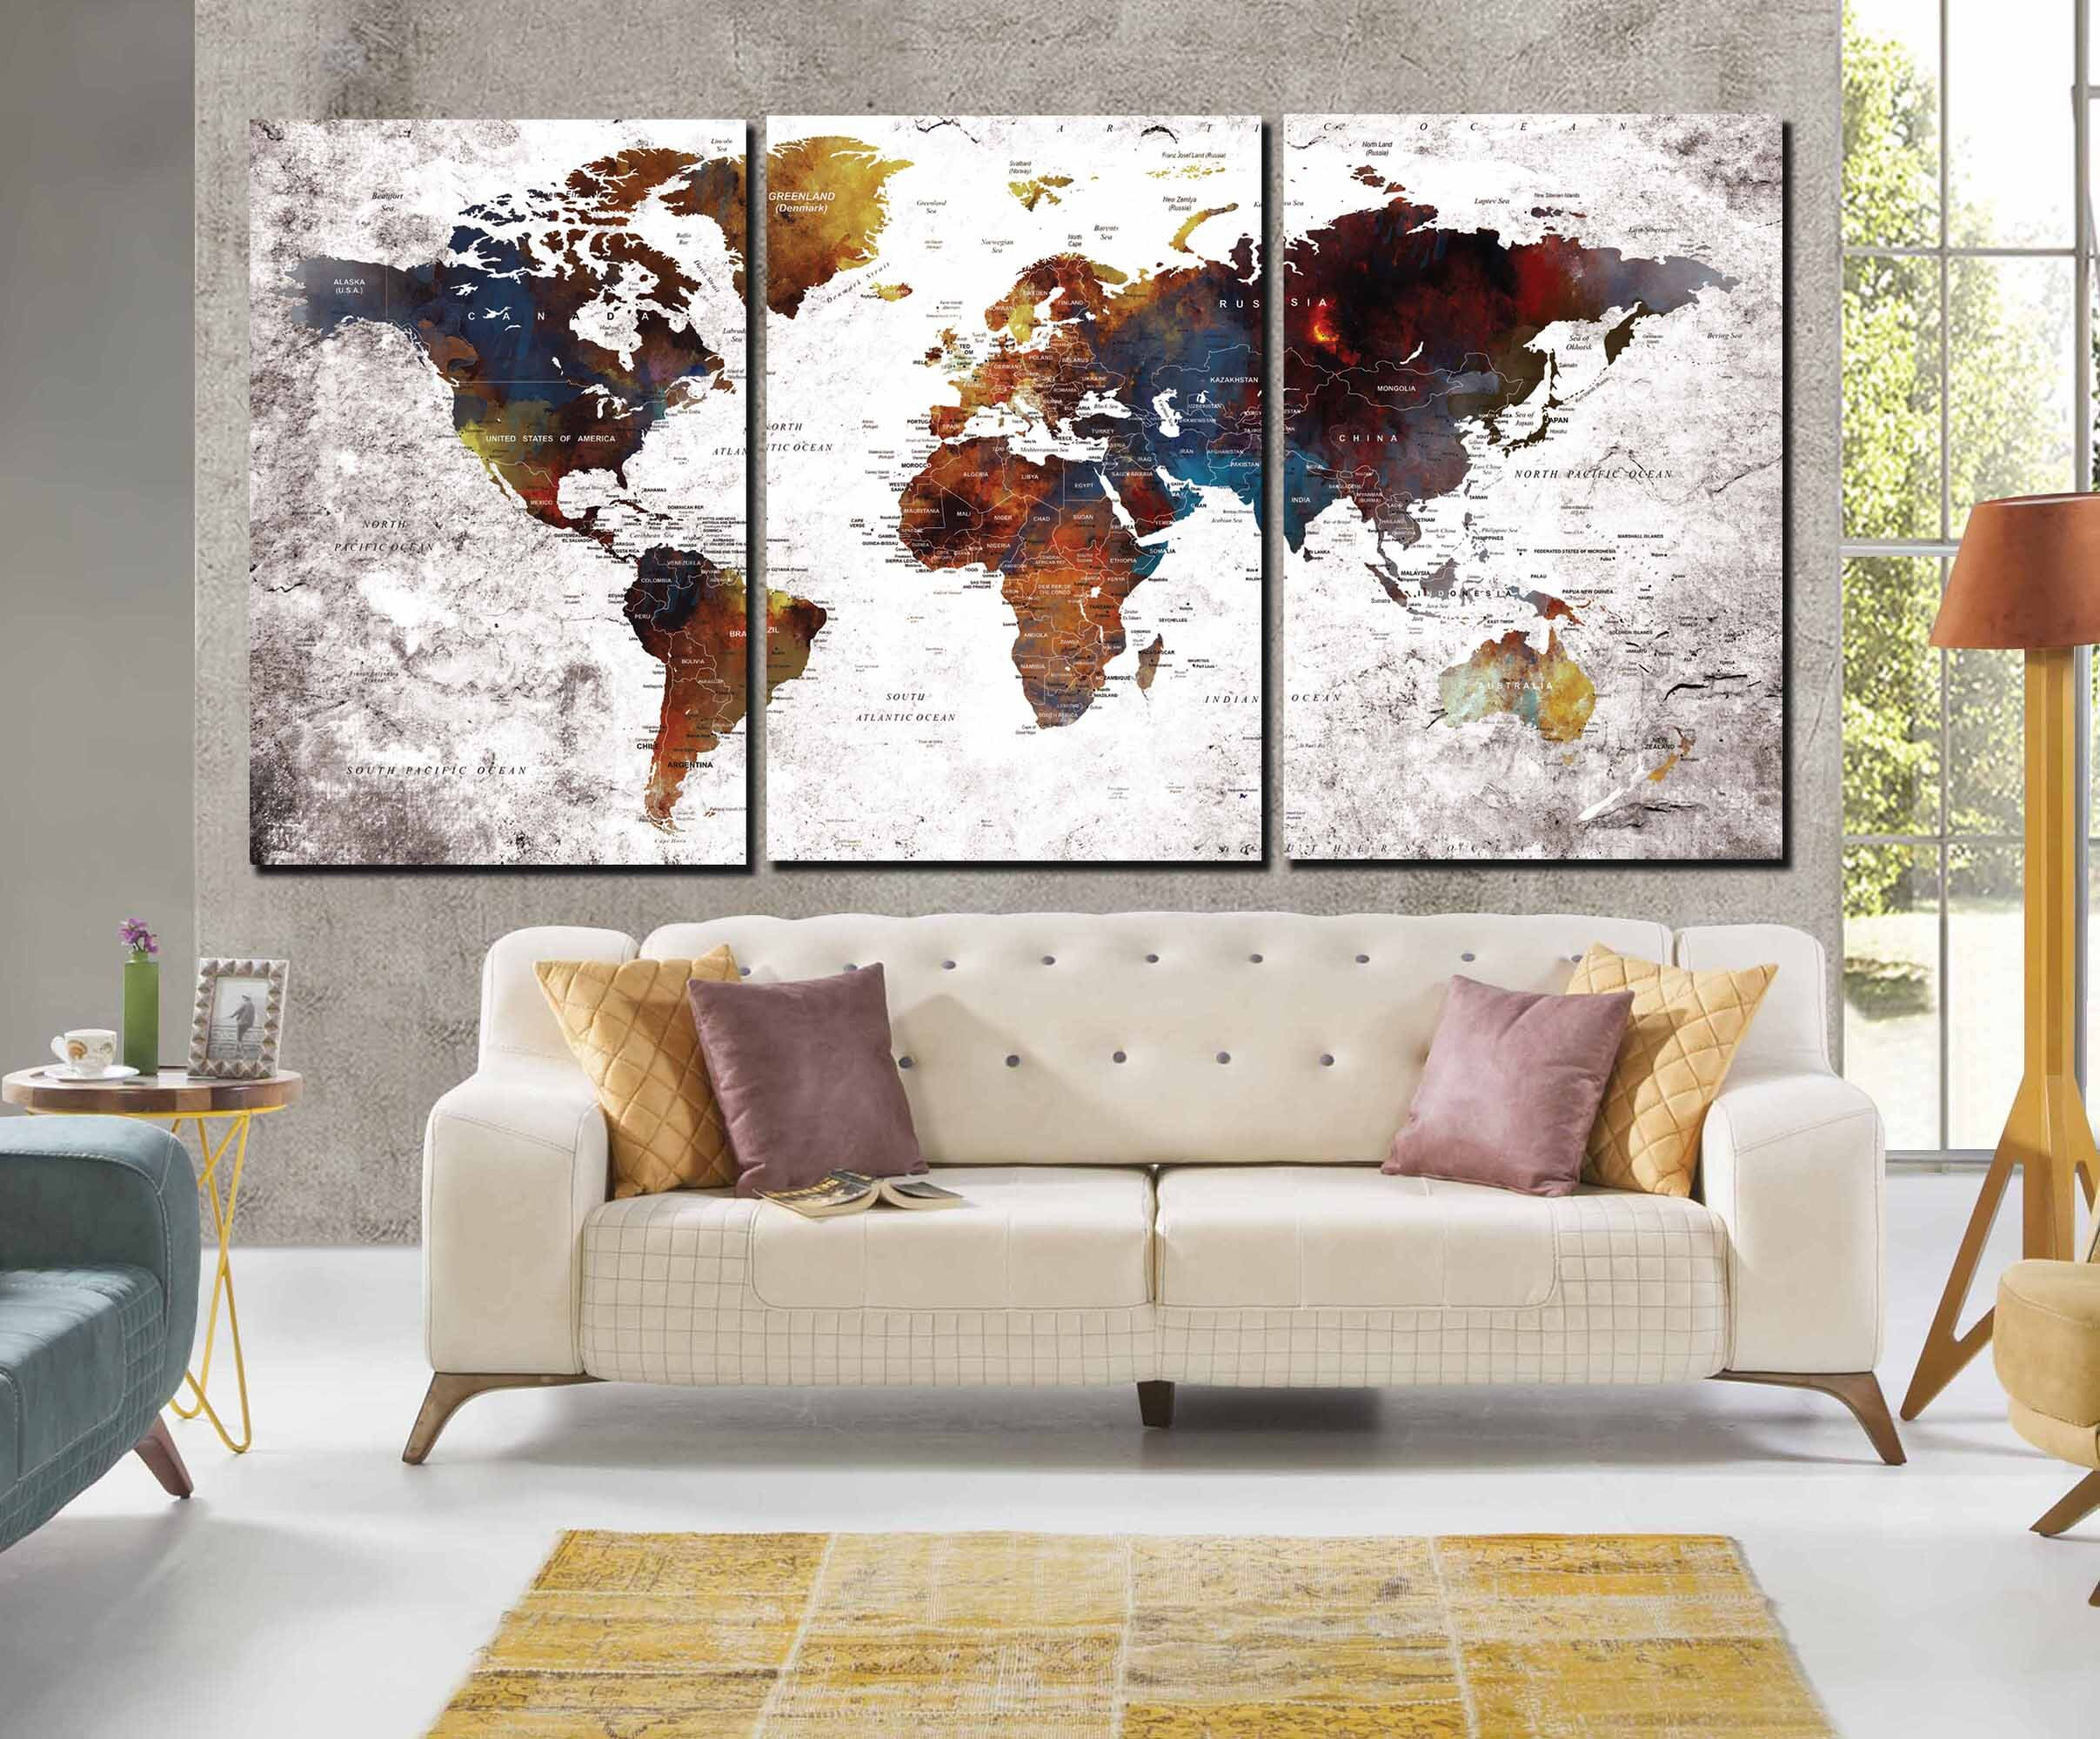 World map wall artworld map canvaslarge world map printlarge world map wall artworld map canvaslarge world map printlarge world maplarge travel mappush pin world mapworld map push pinmap art gumiabroncs Images